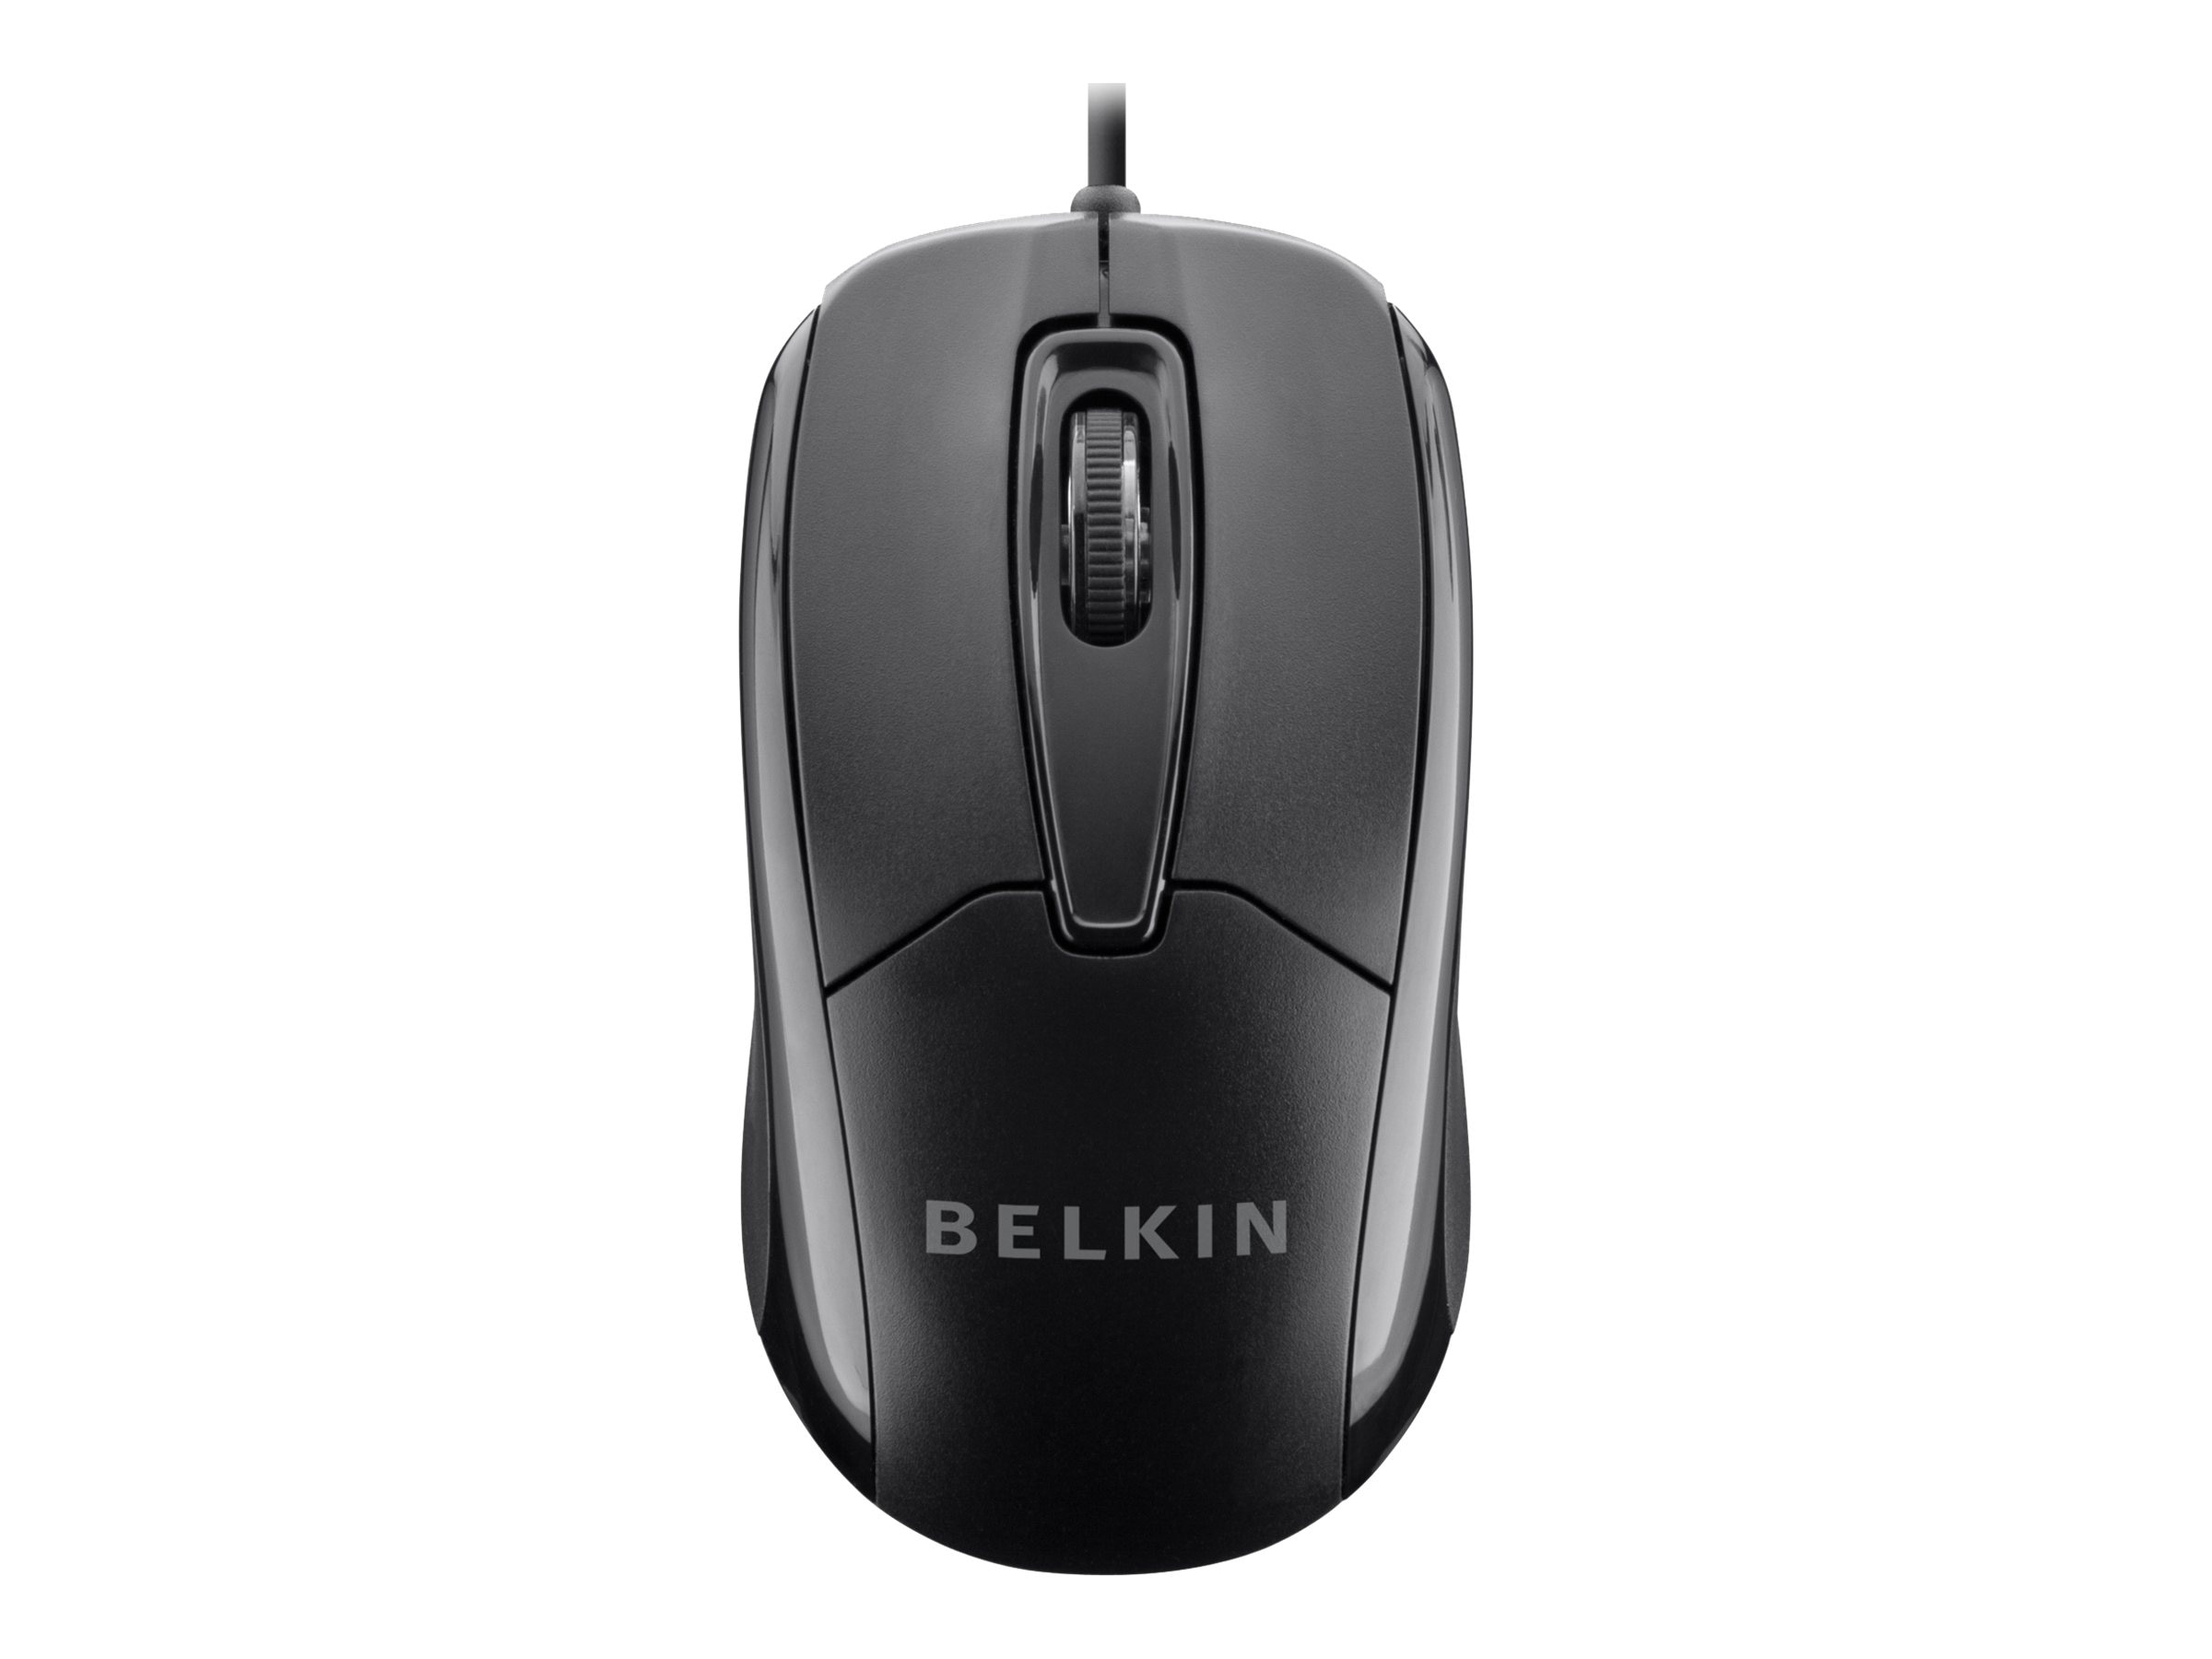 Belkin Wired Mouse Ergonomic USB PNP Black, F5M010QBLK, 13711258, Mice & Cursor Control Devices